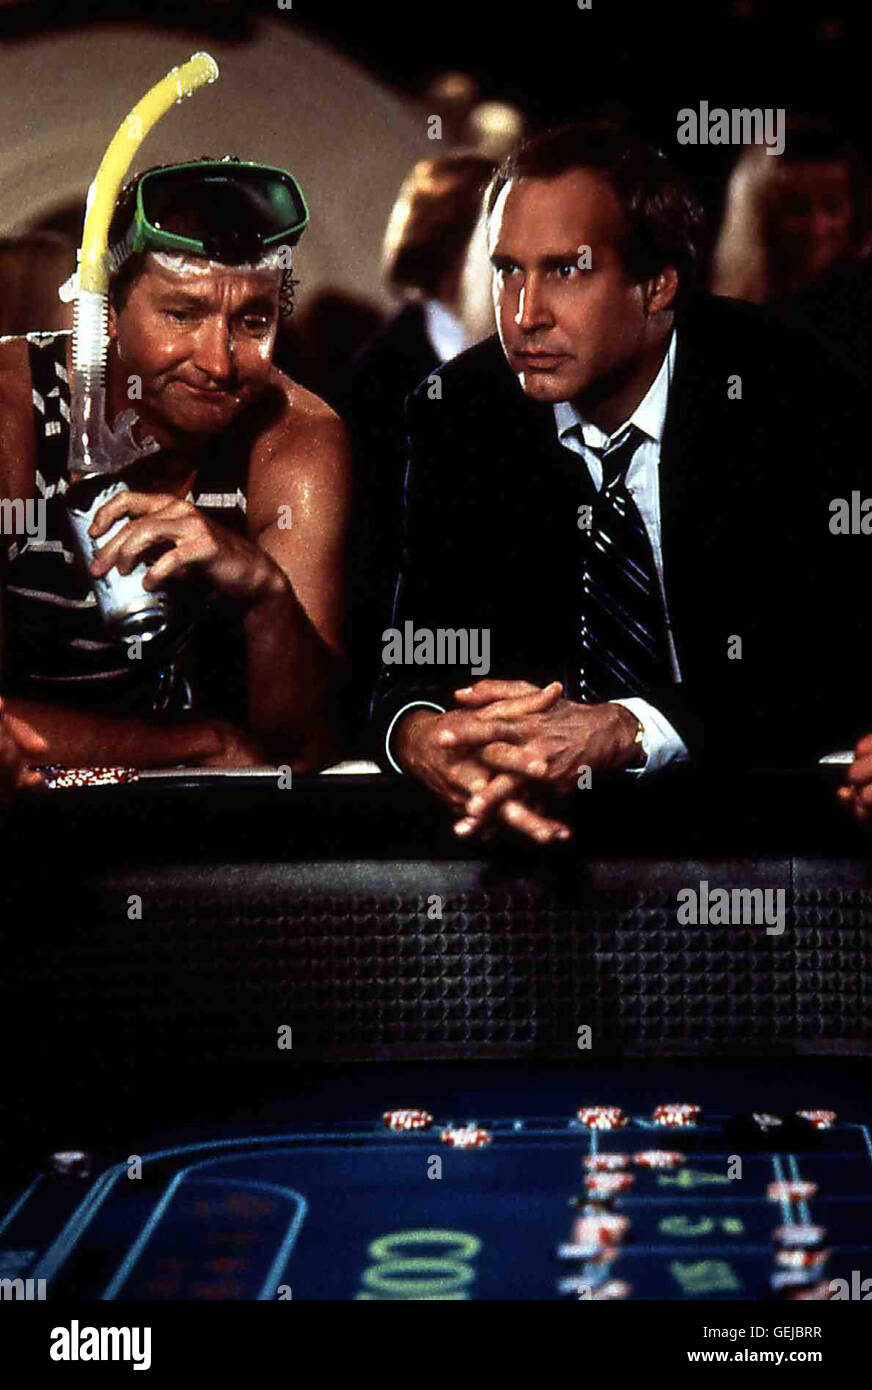 Chevy Chase Randy Quaid Signed Vegas: Chevy Chase Vacation Stock Photos & Chevy Chase Vacation